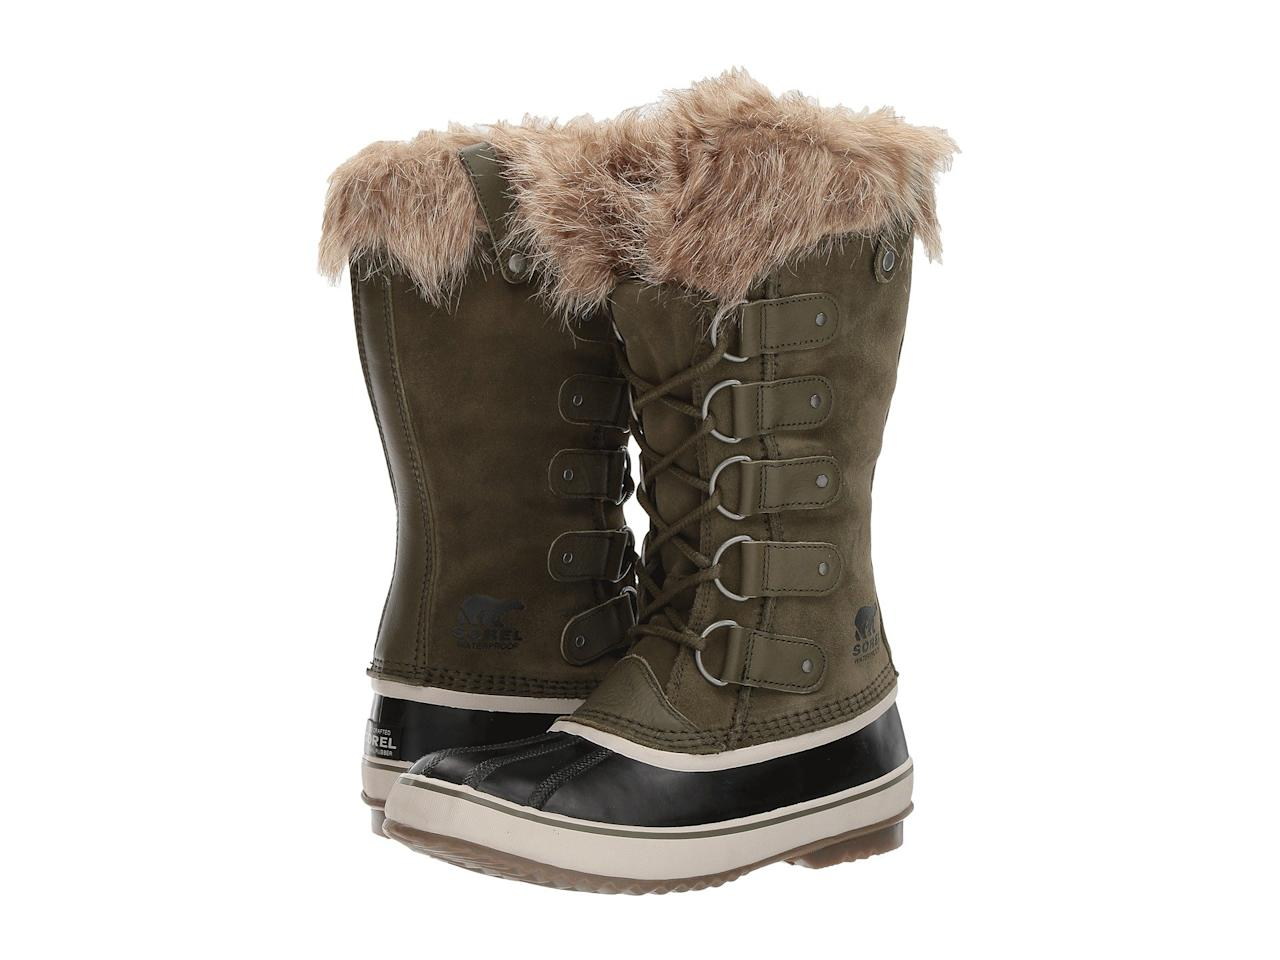 "<p>Sorel's Joan of Arctic boot has become a modern day classic, boasting the best of fashion and function. These waterproof wonders stylishly conquer whatever weather Mother Nature dishes out. So comfy and good looking, you won't wait for snow as an excuse to sport them. Plus, we love the cozy faux fur detail.<br /><a rel=""nofollow"" href=""https://fave.co/2Tni1J3""><strong>Shop it:</strong> </a>$190, <a rel=""nofollow"" href=""https://fave.co/2Tni1J3"">zappos.com</a> </p>"